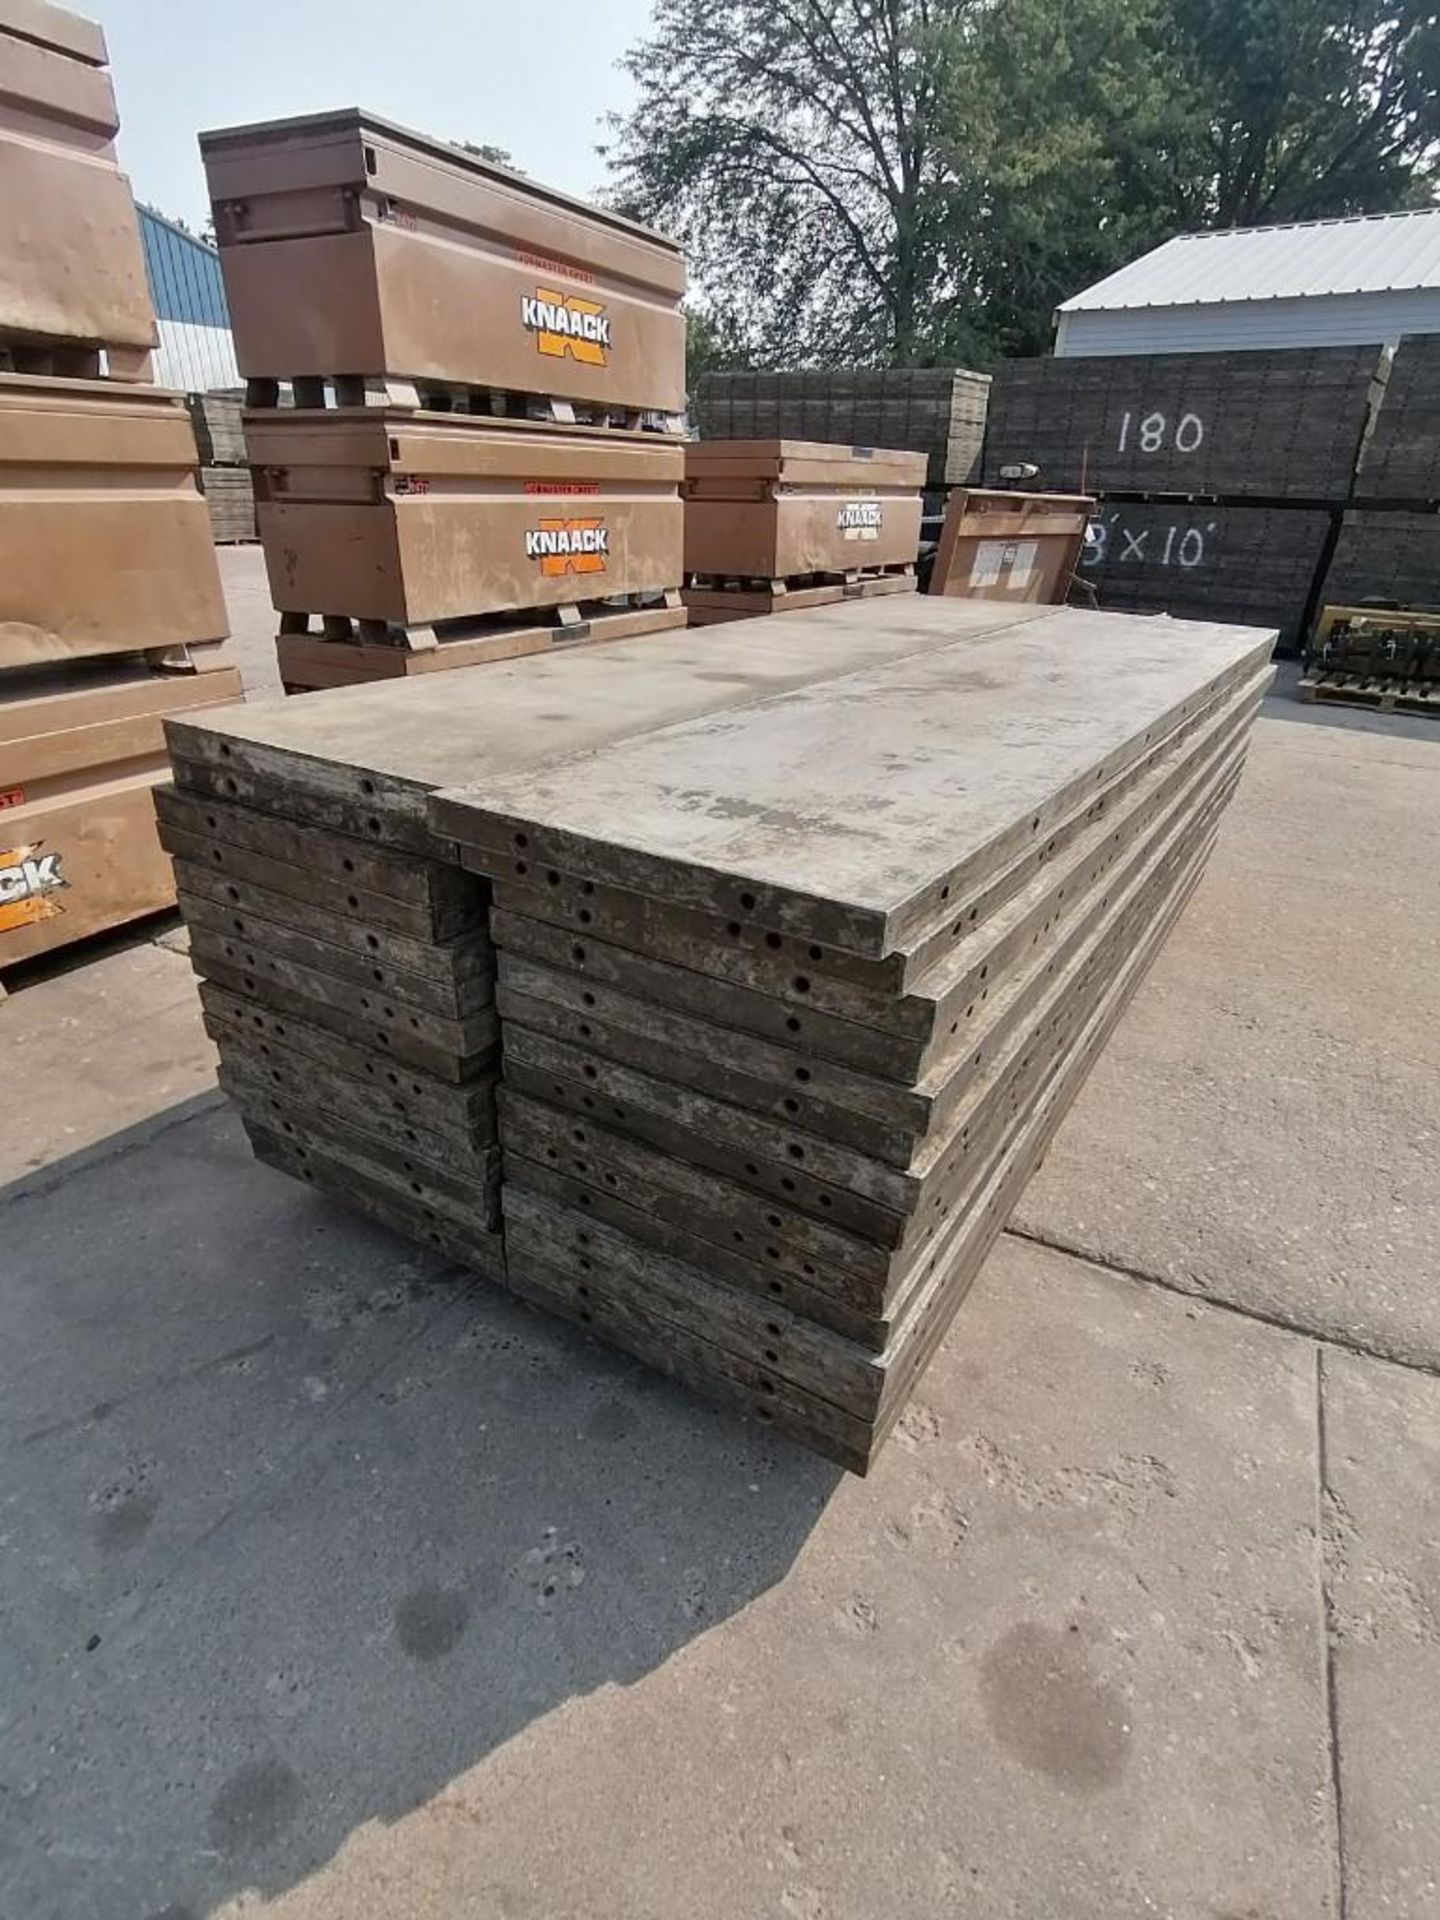 Lot 140 - (30) 2' x 9' Wall-Ties Aluminum Concrete Forms, Laydowns, Smooth 6-12 Hole Pattern. Located at 301 E